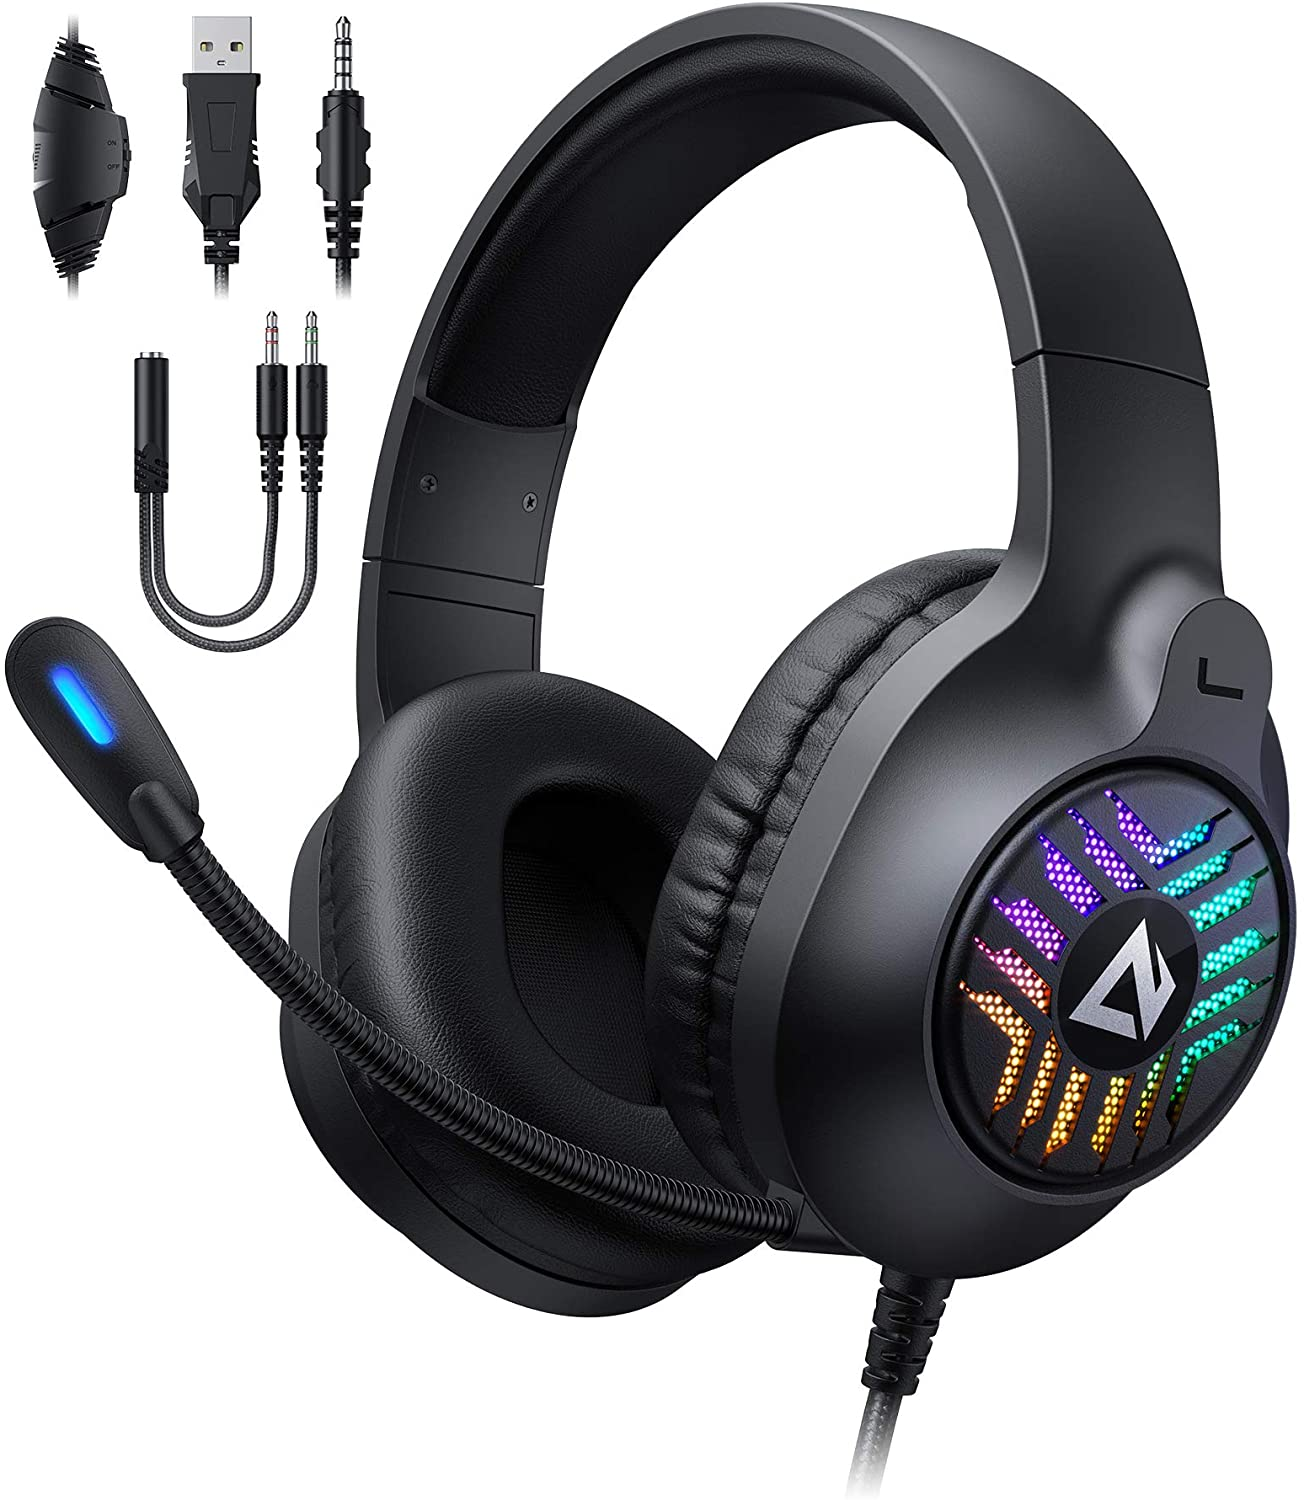 AUKEY RGB Gaming Headset Review